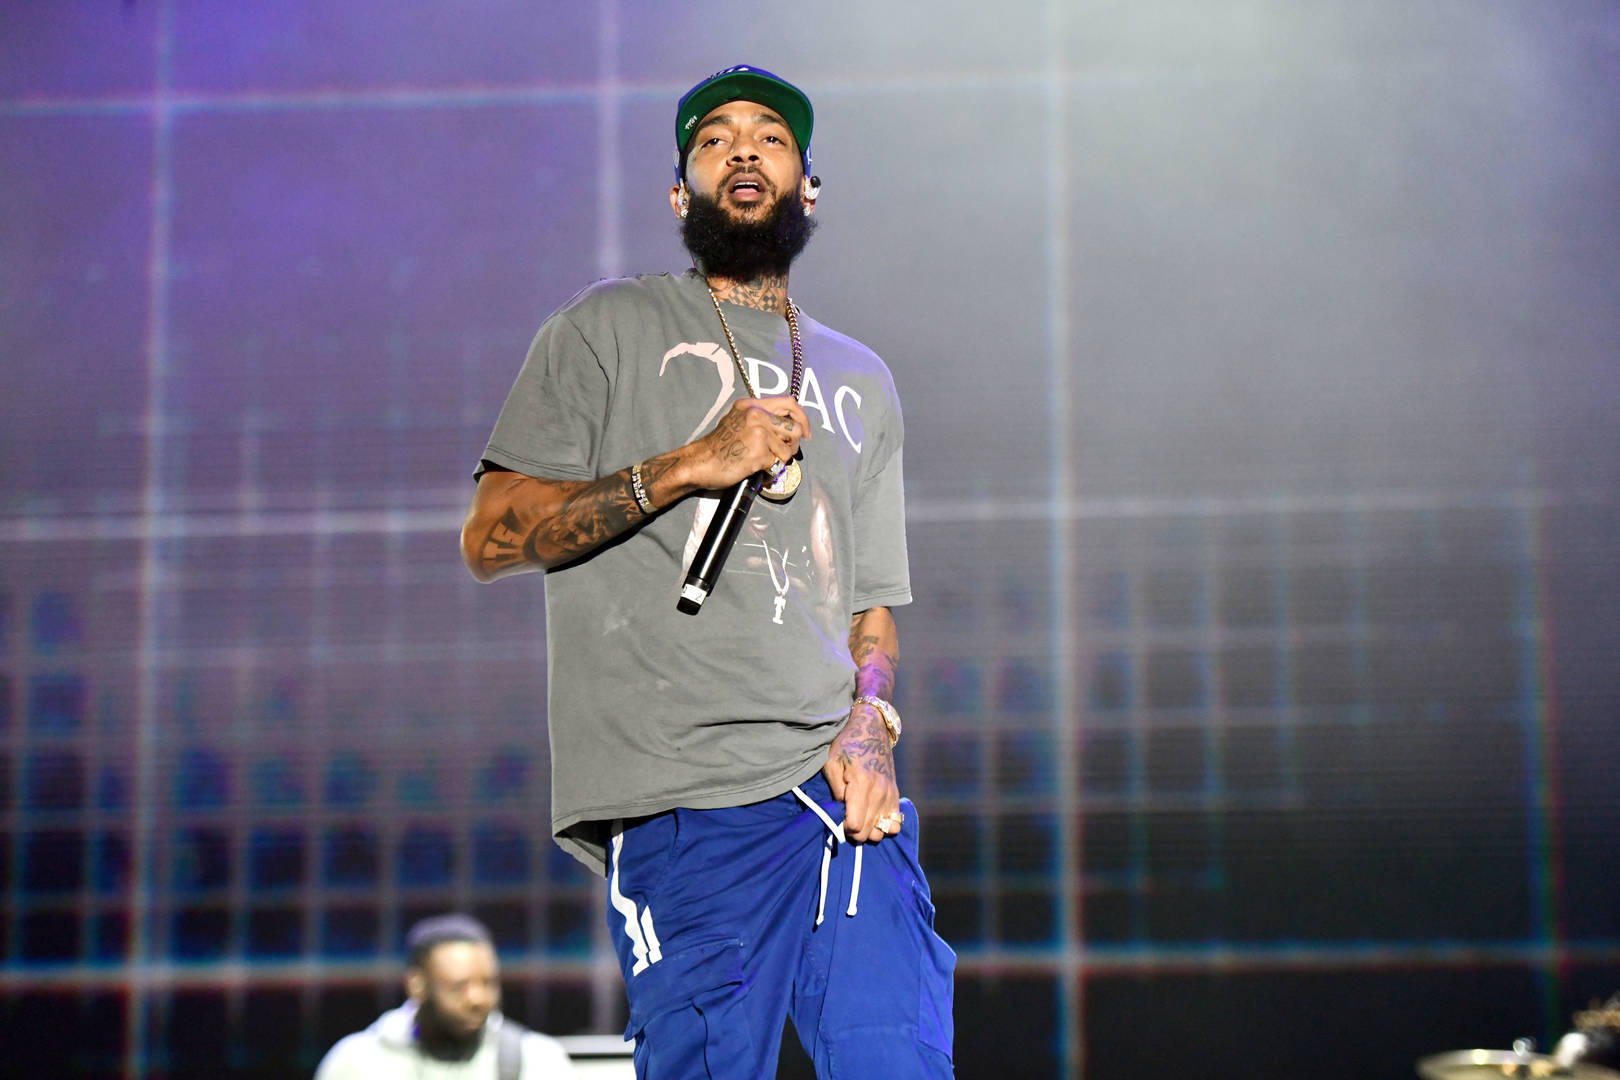 Nipsey Hussle to have massive memorial at Staples Center